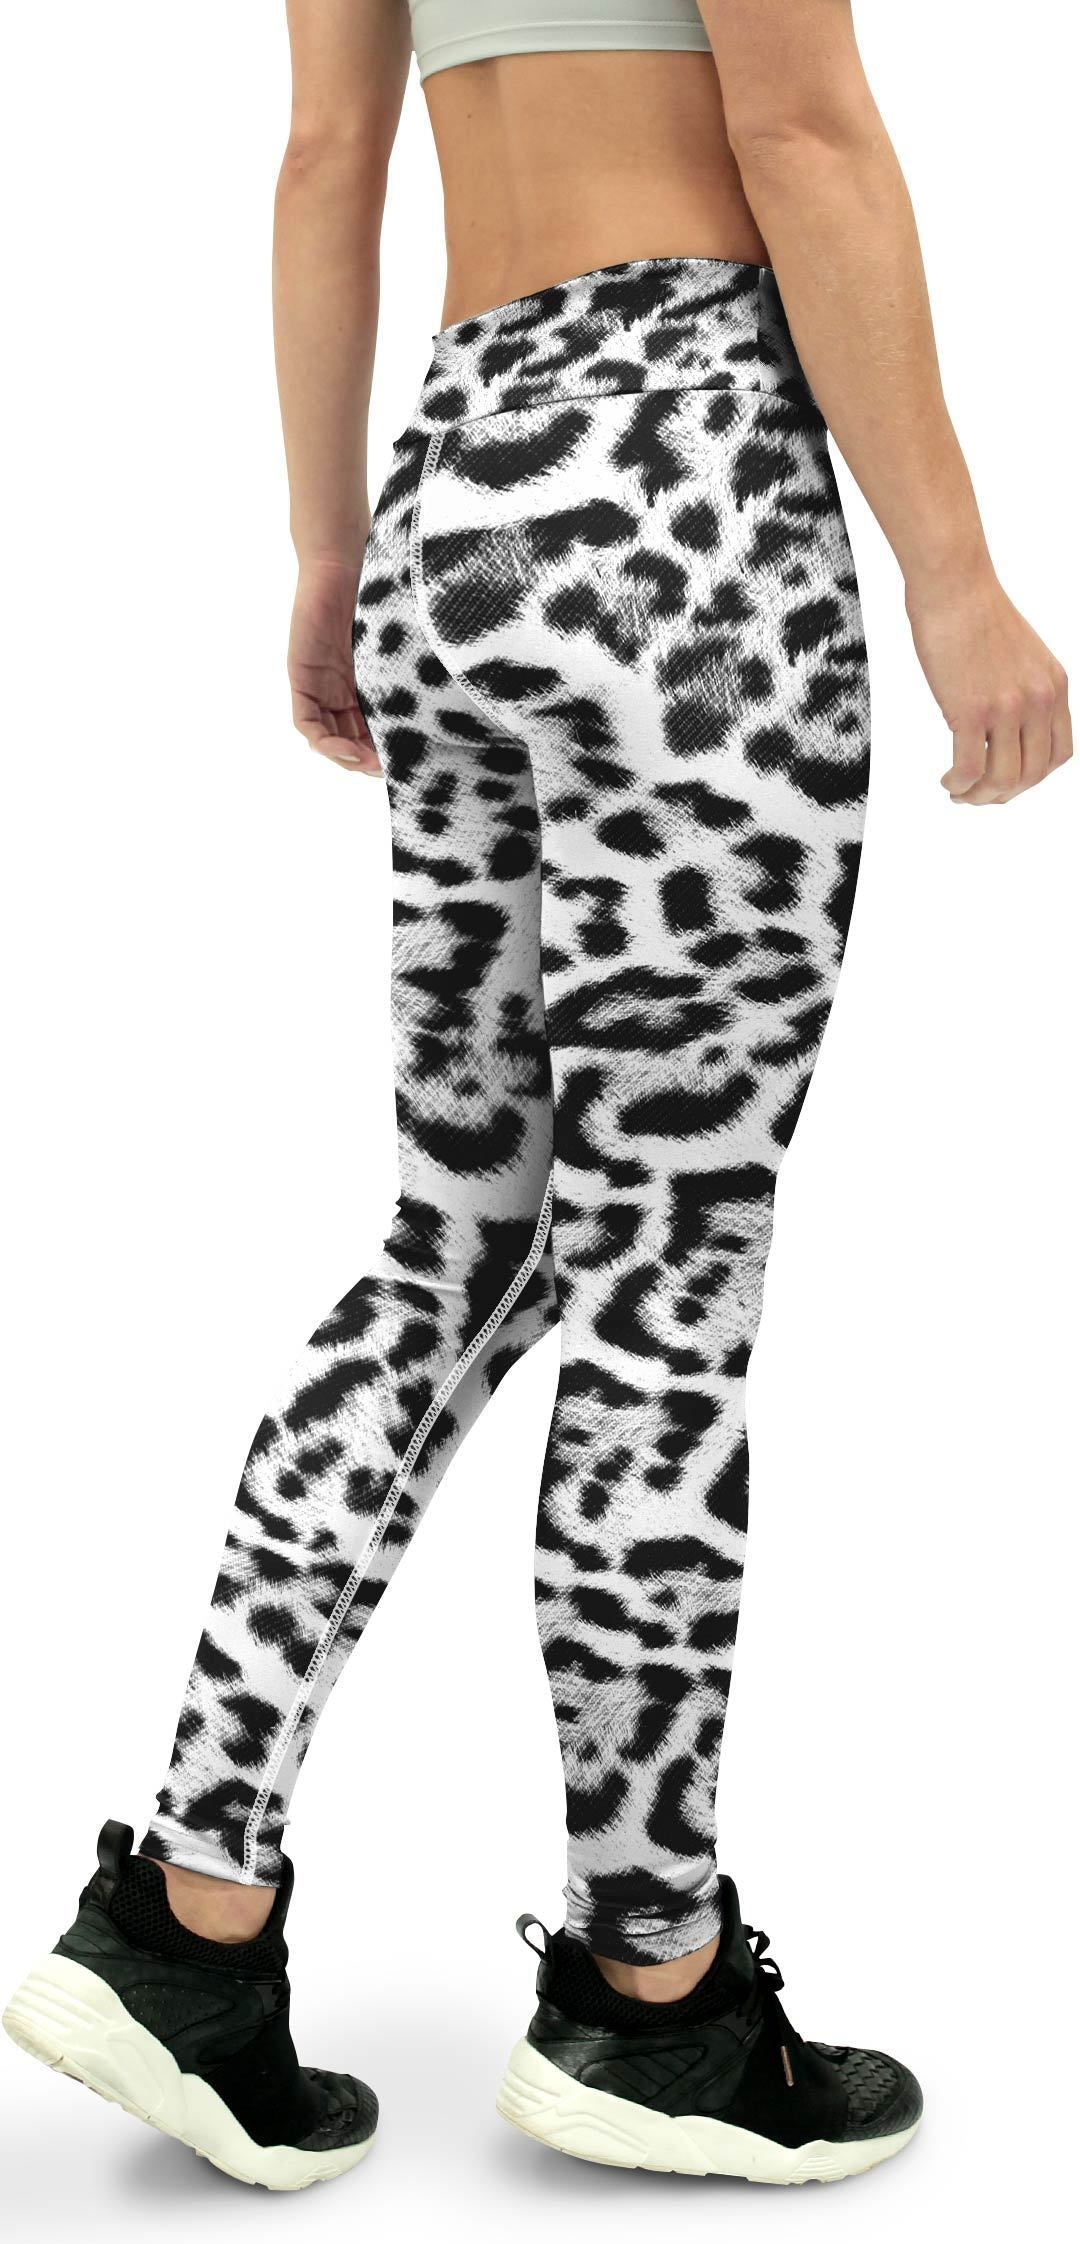 Snow Leopard Skin Yoga Pants